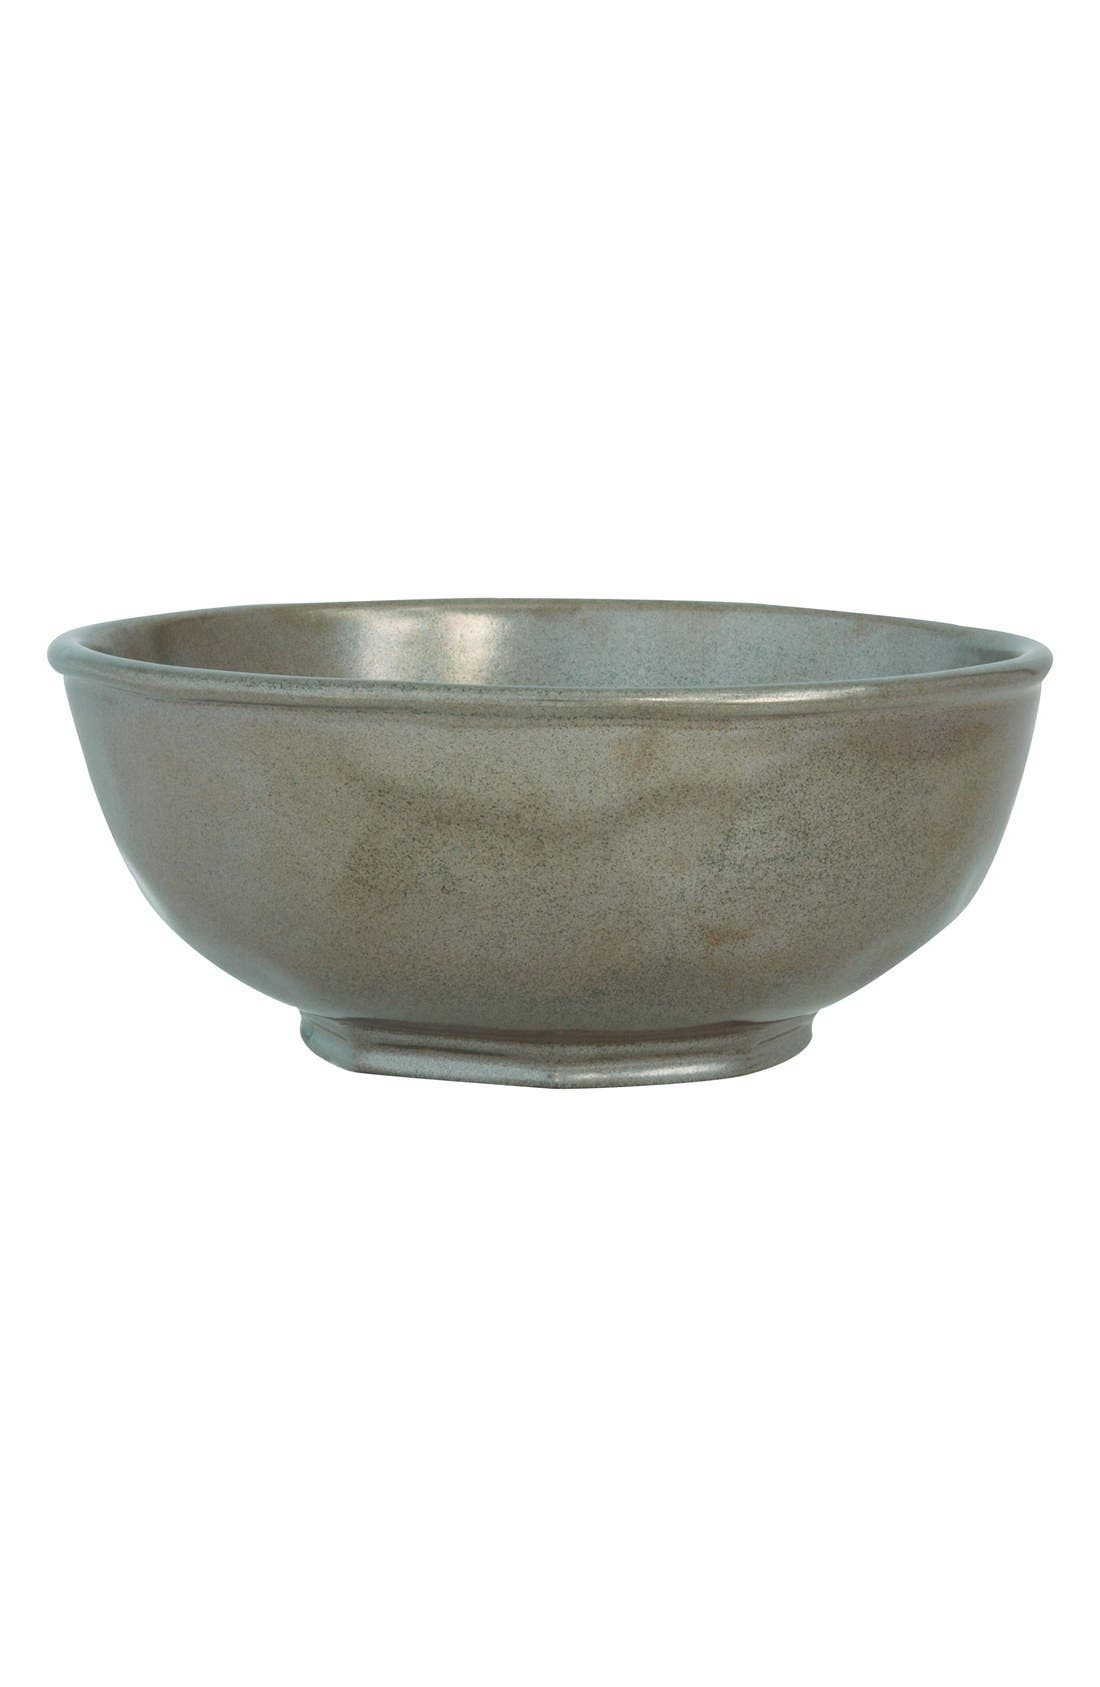 Main Image - Juliska 'Pewter' Ceramic Bowl